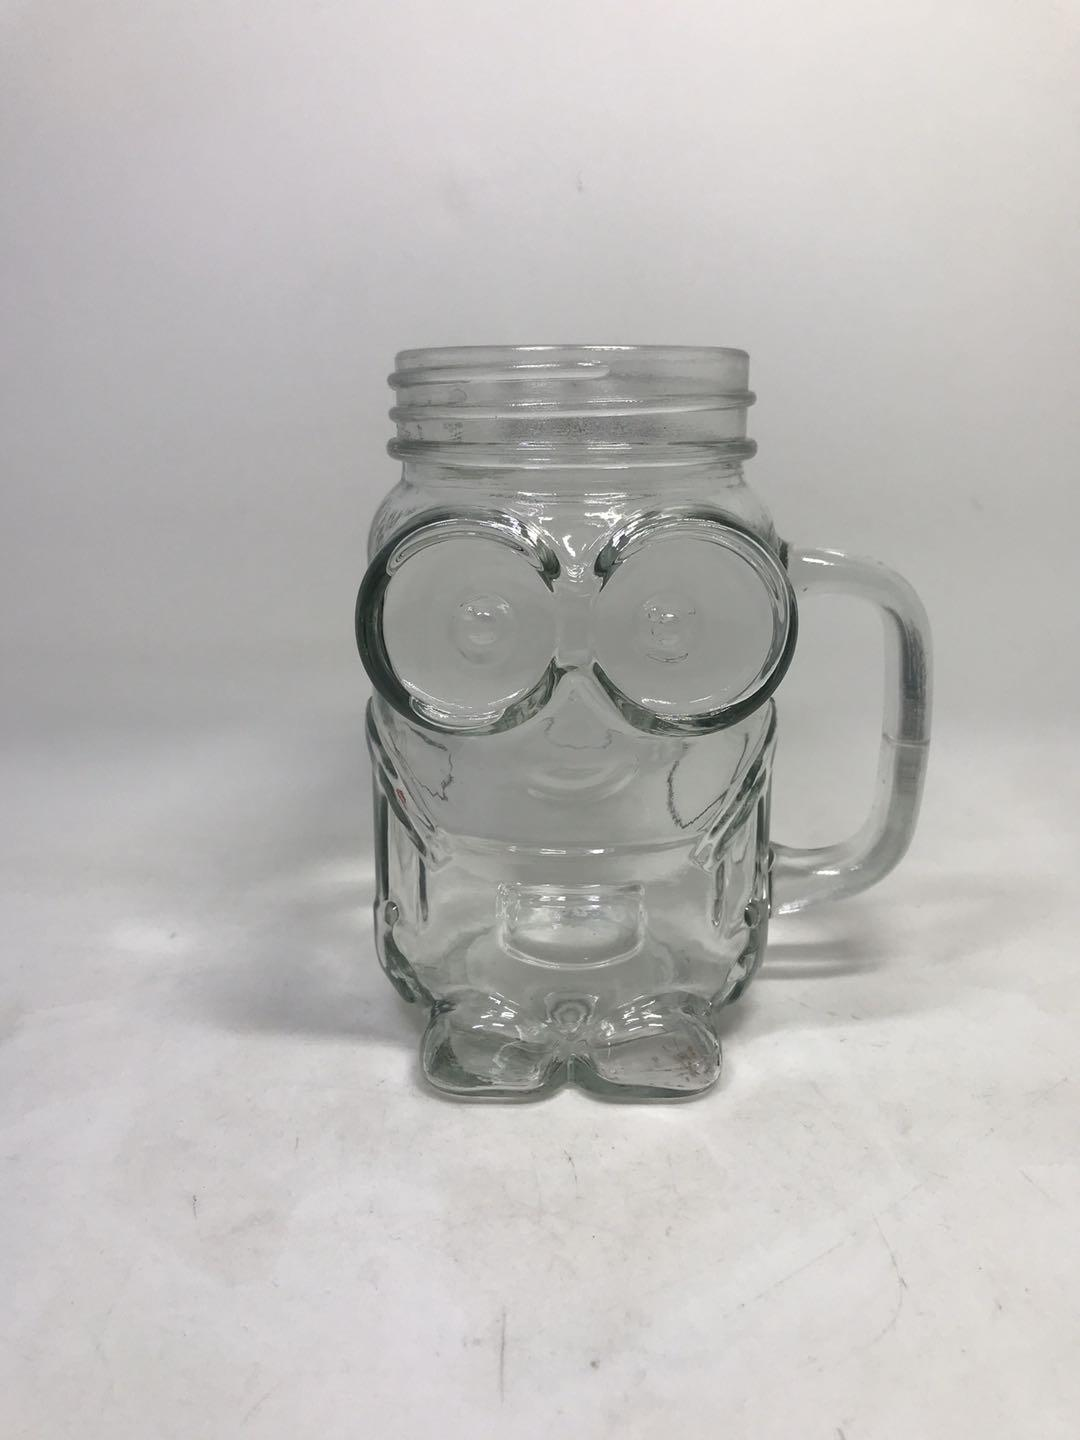 Fancy Shaped Beer Glass Drinking Glass for Liquor/Whisky SDY-X02873